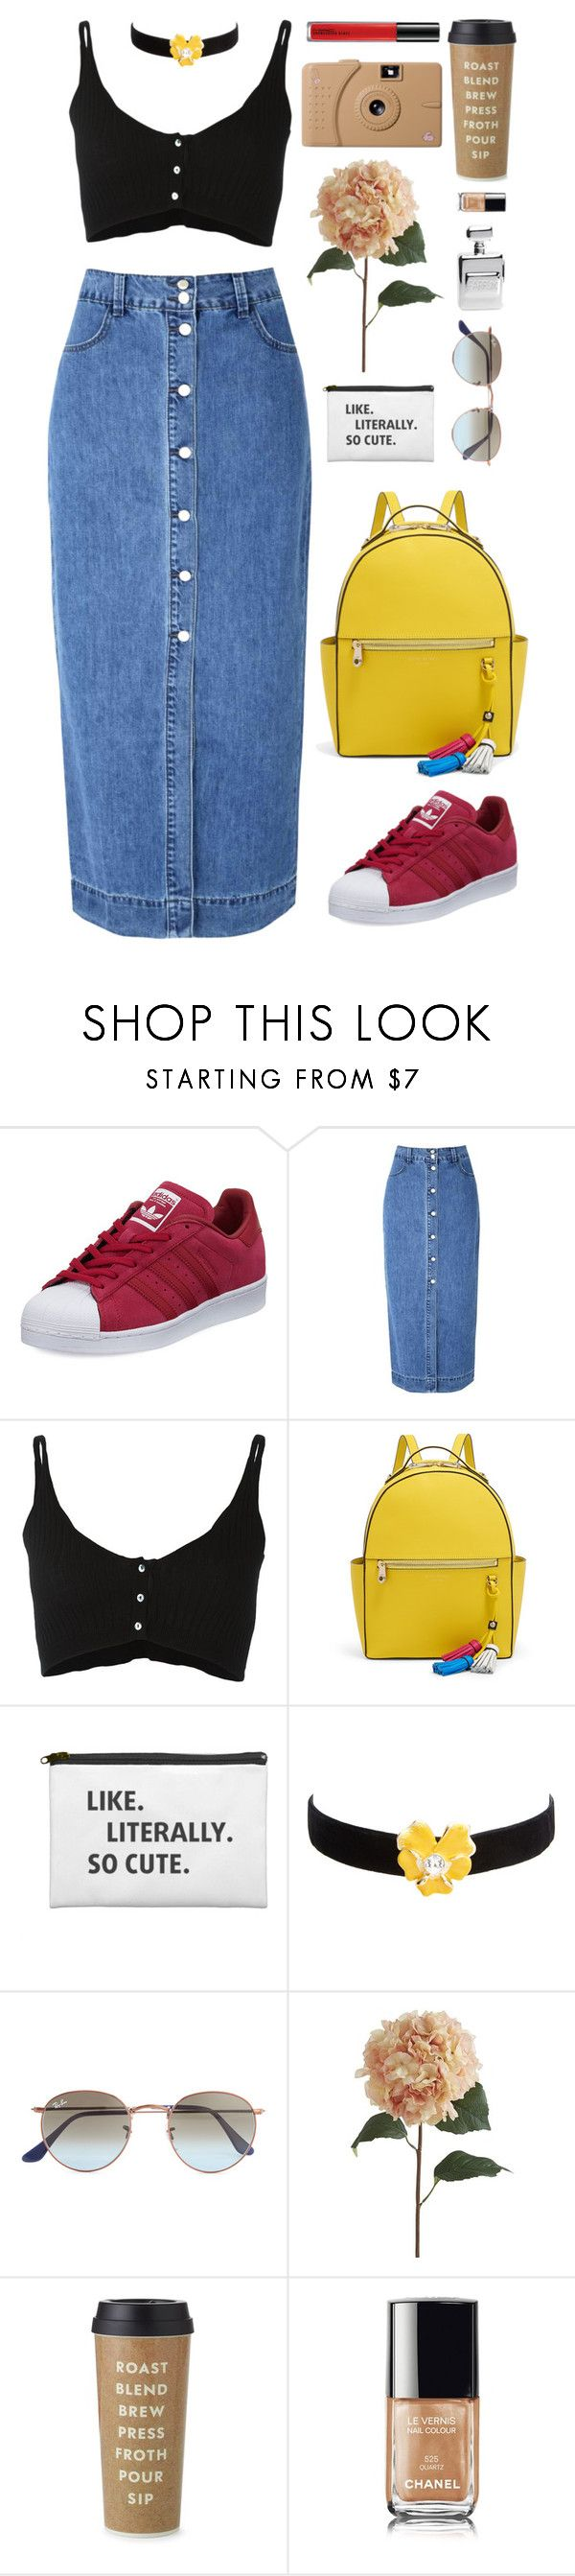 """be original"" by chanelniall ❤ liked on Polyvore featuring adidas, Glamorous, Forte Forte, Henri Bendel, Kenneth Jay Lane, Ray-Ban, Pier 1 Imports, Poketo, Kate Spade and Chanel"